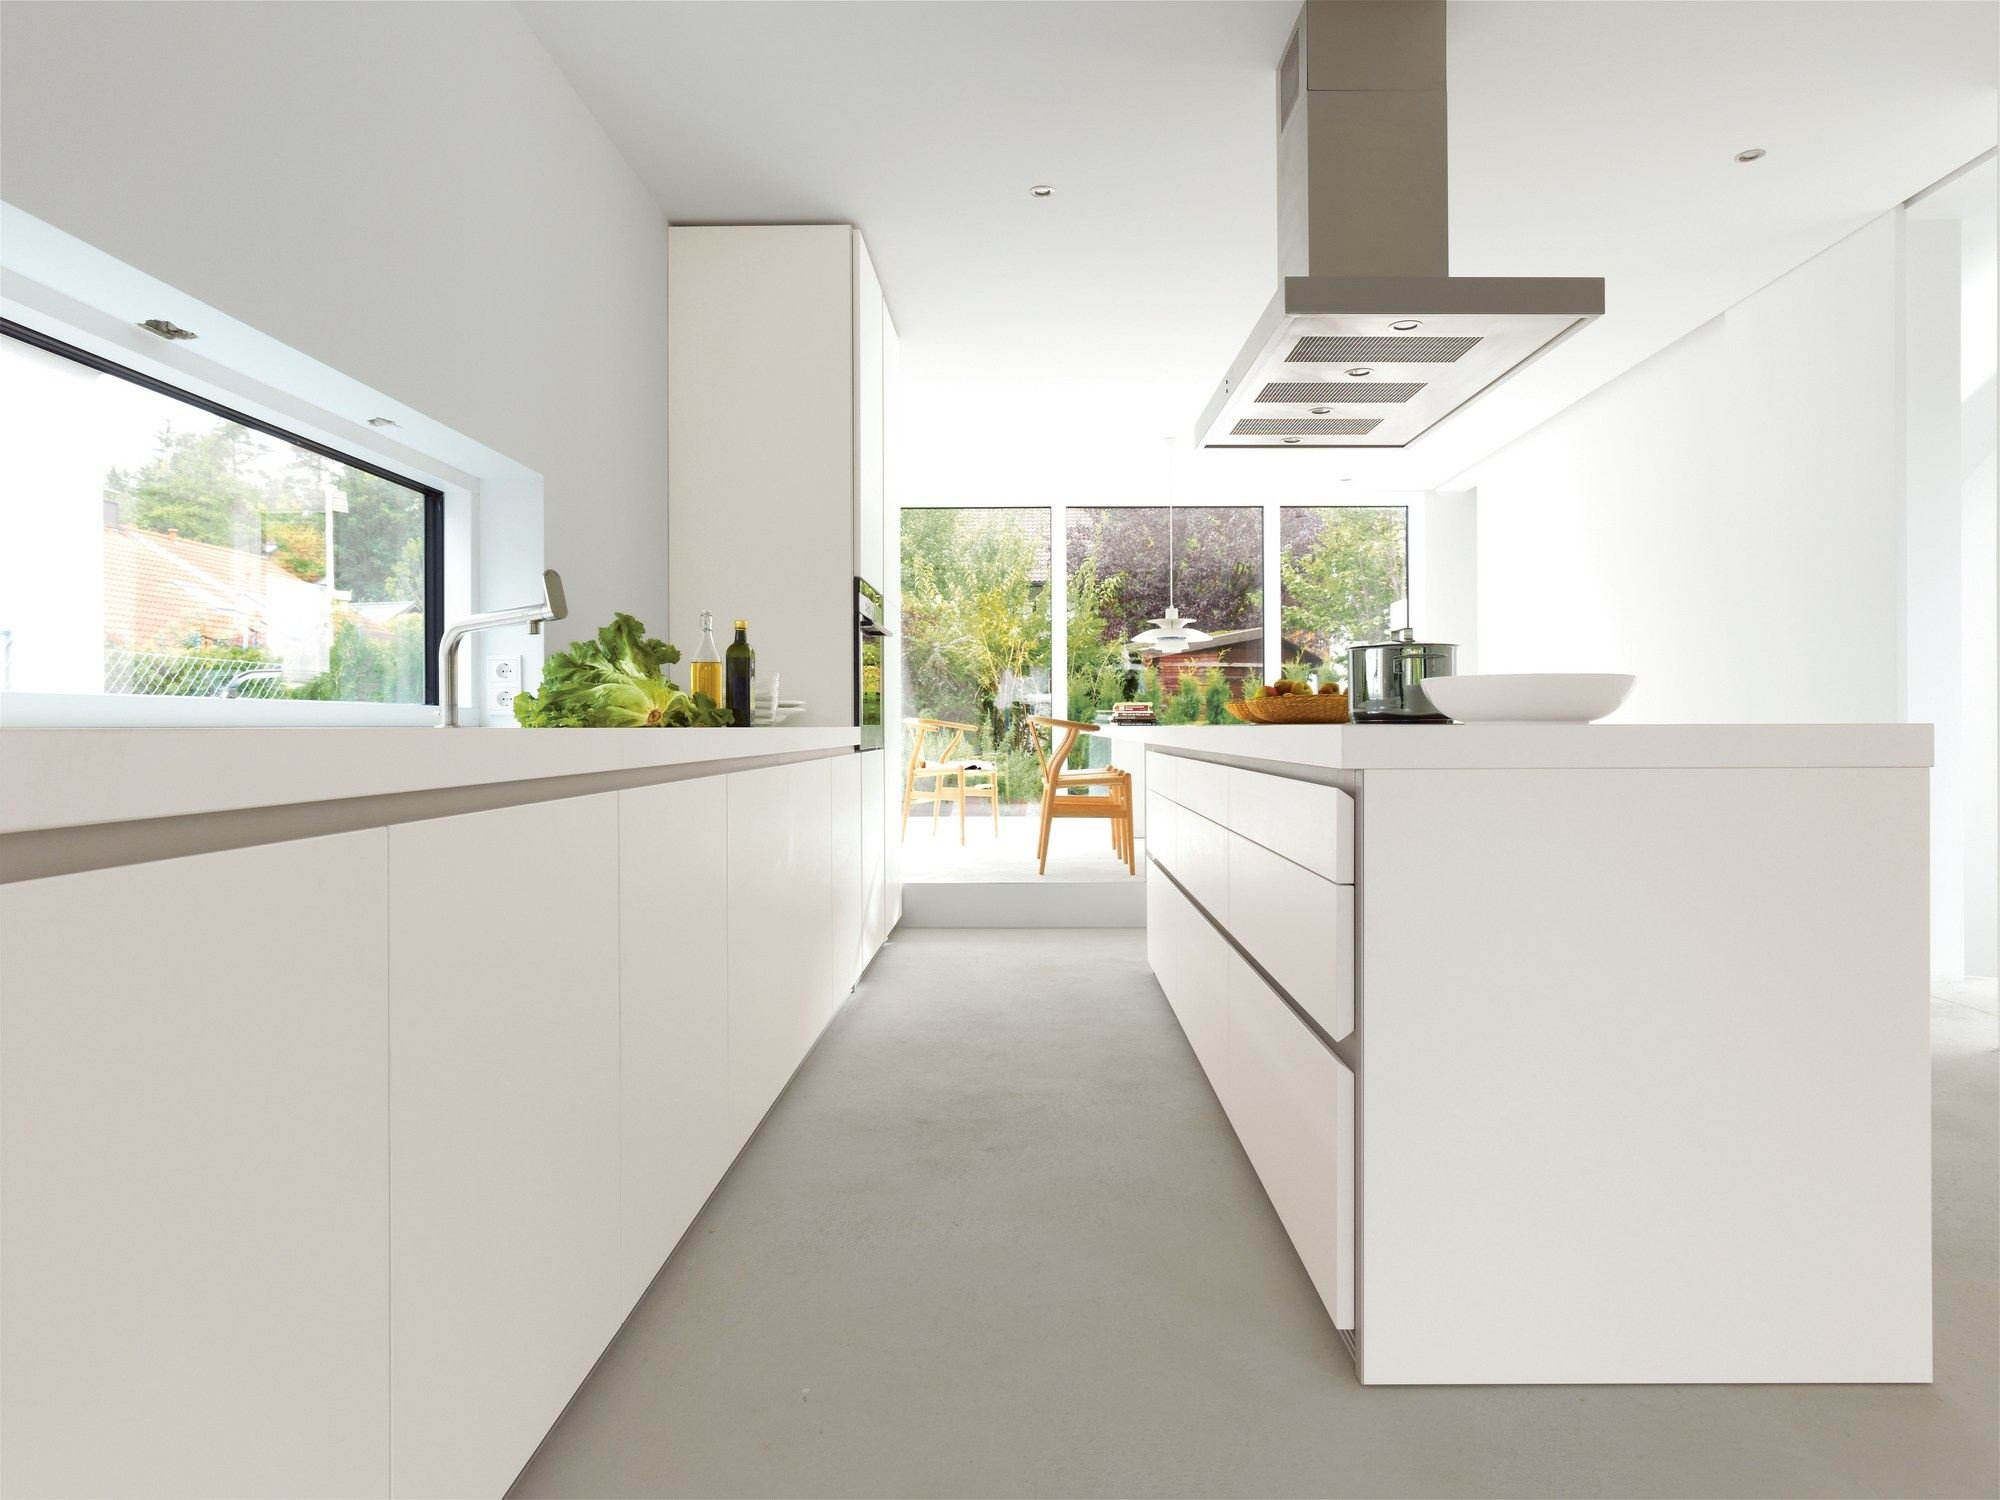 B1 Linear Fitted Kitchen B1 Kitchen With Island Bulthaup on bulthaup kitchen prices